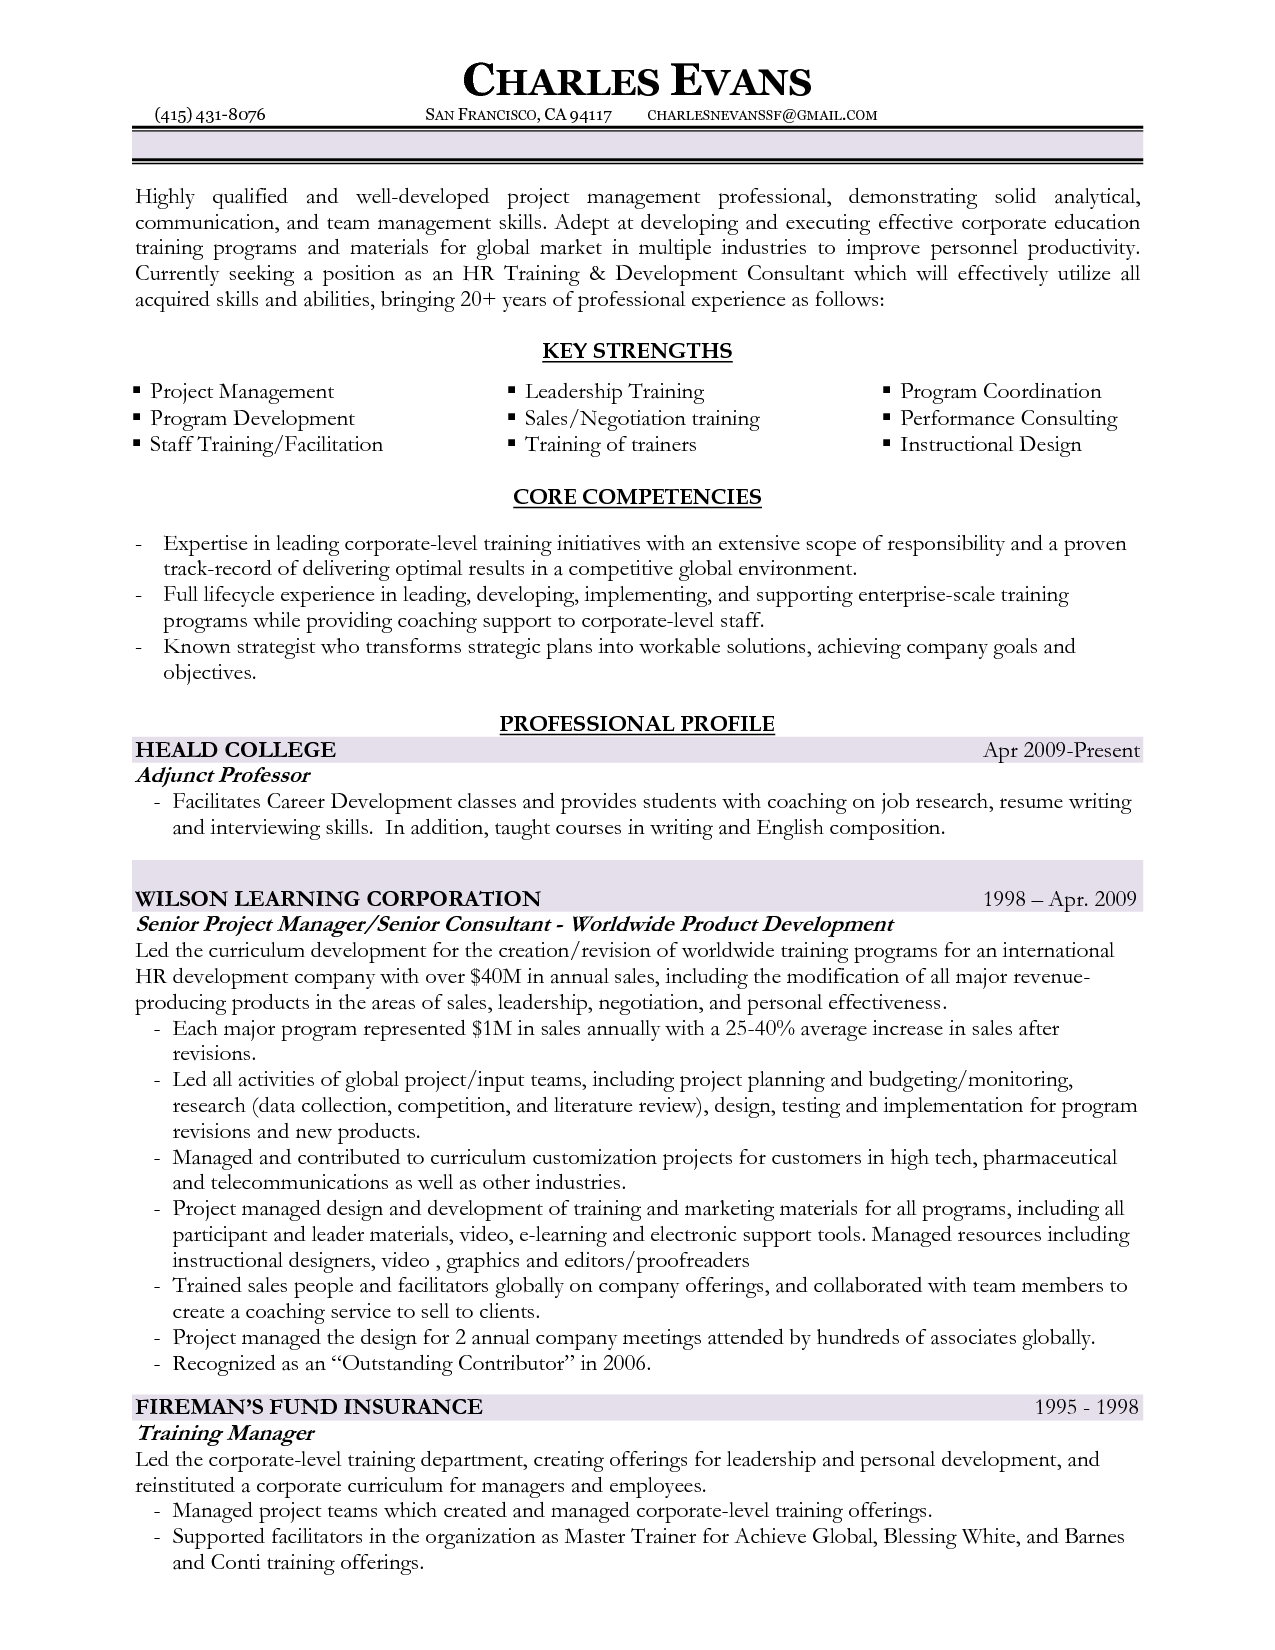 Training And Development Resume Samples Inside Training On Resume